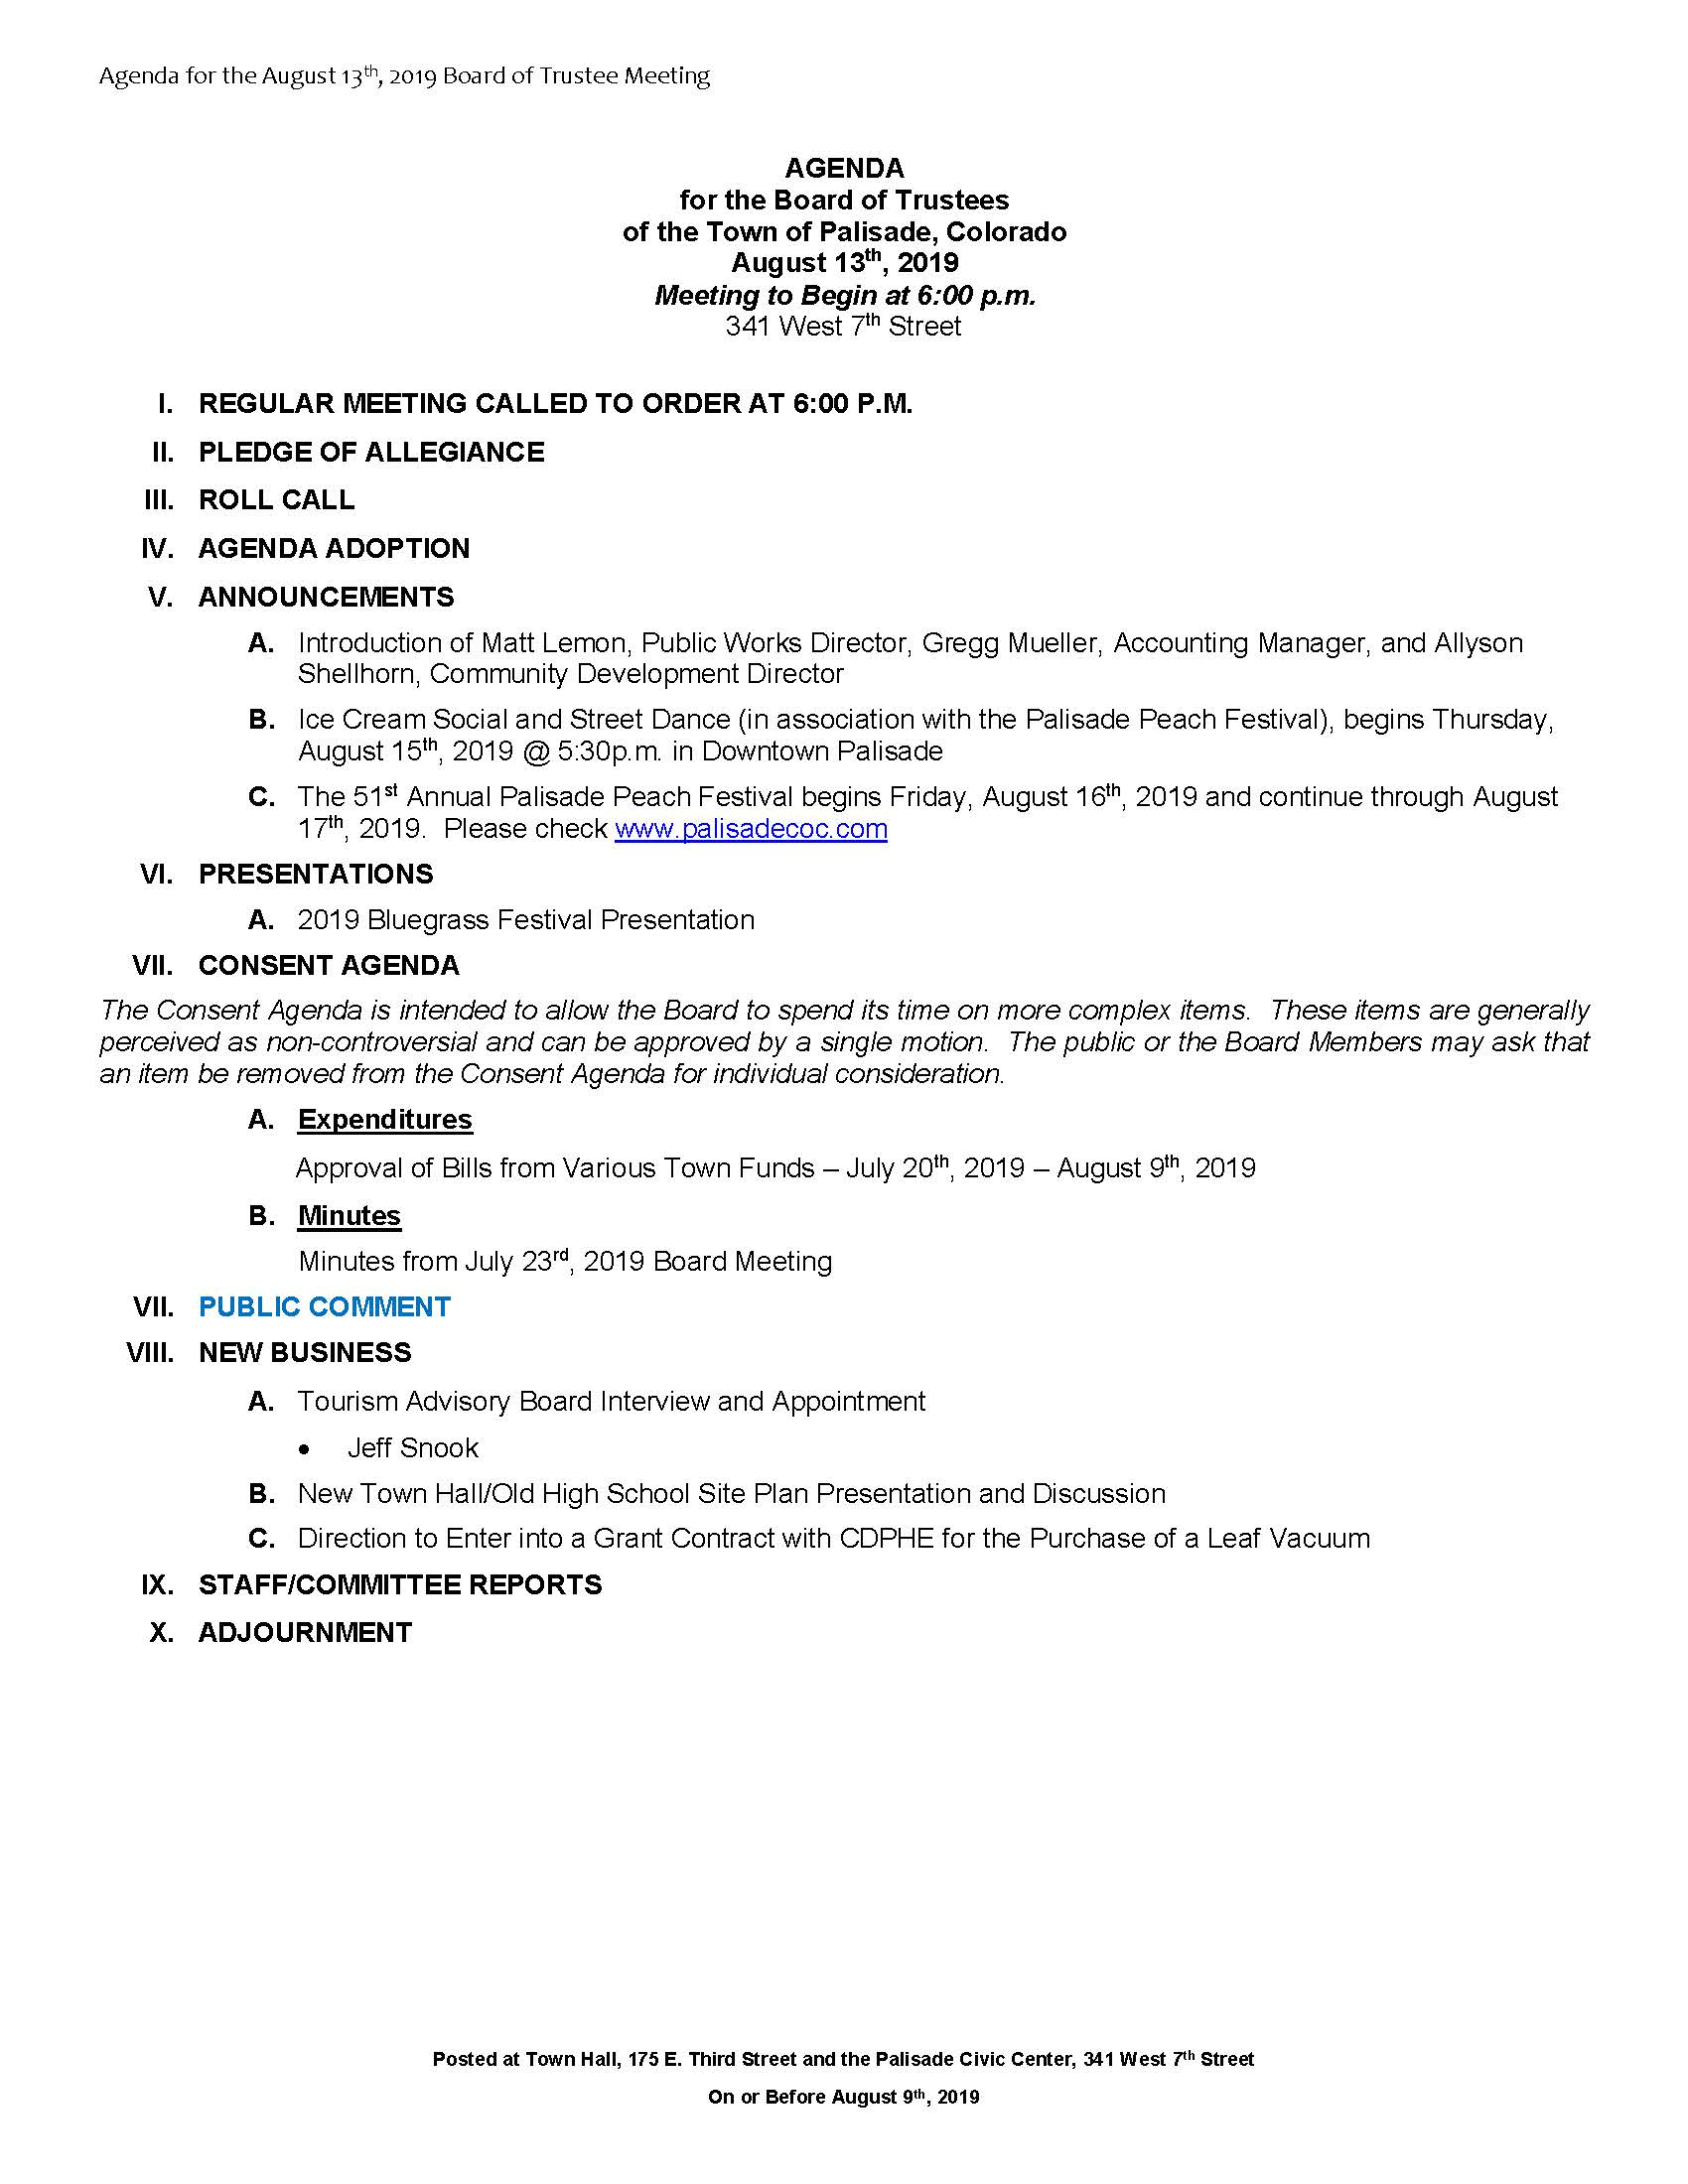 August 13th 2019 Board Meeting Agenda